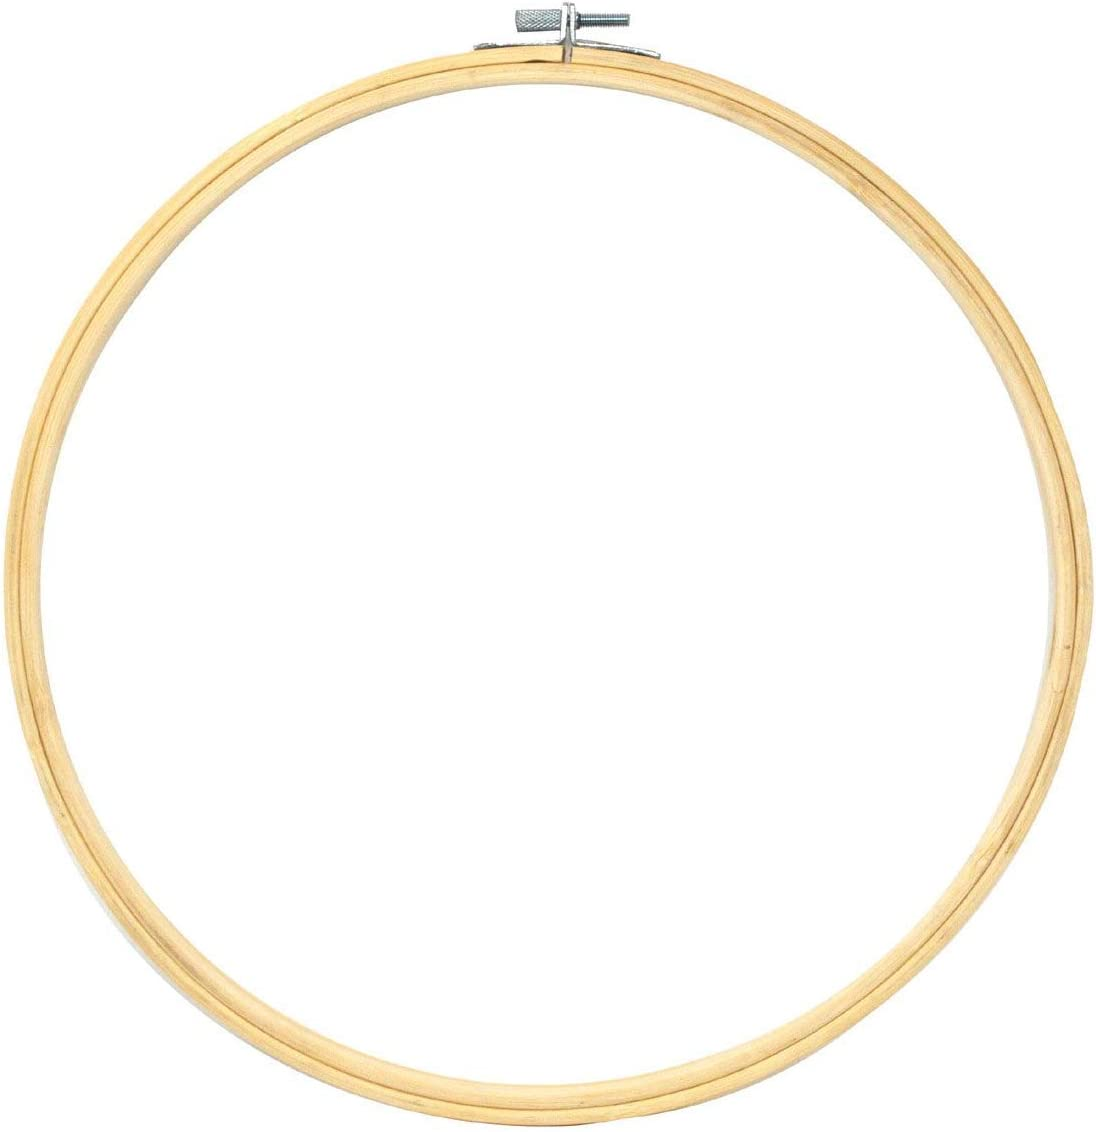 Bamboo Embroidery Hoops 12 9 7 5 Inch 8 PCs for Cross Stitch Needlepoint Art Ornament Circle Frame; by Mandala Crafts Needlework